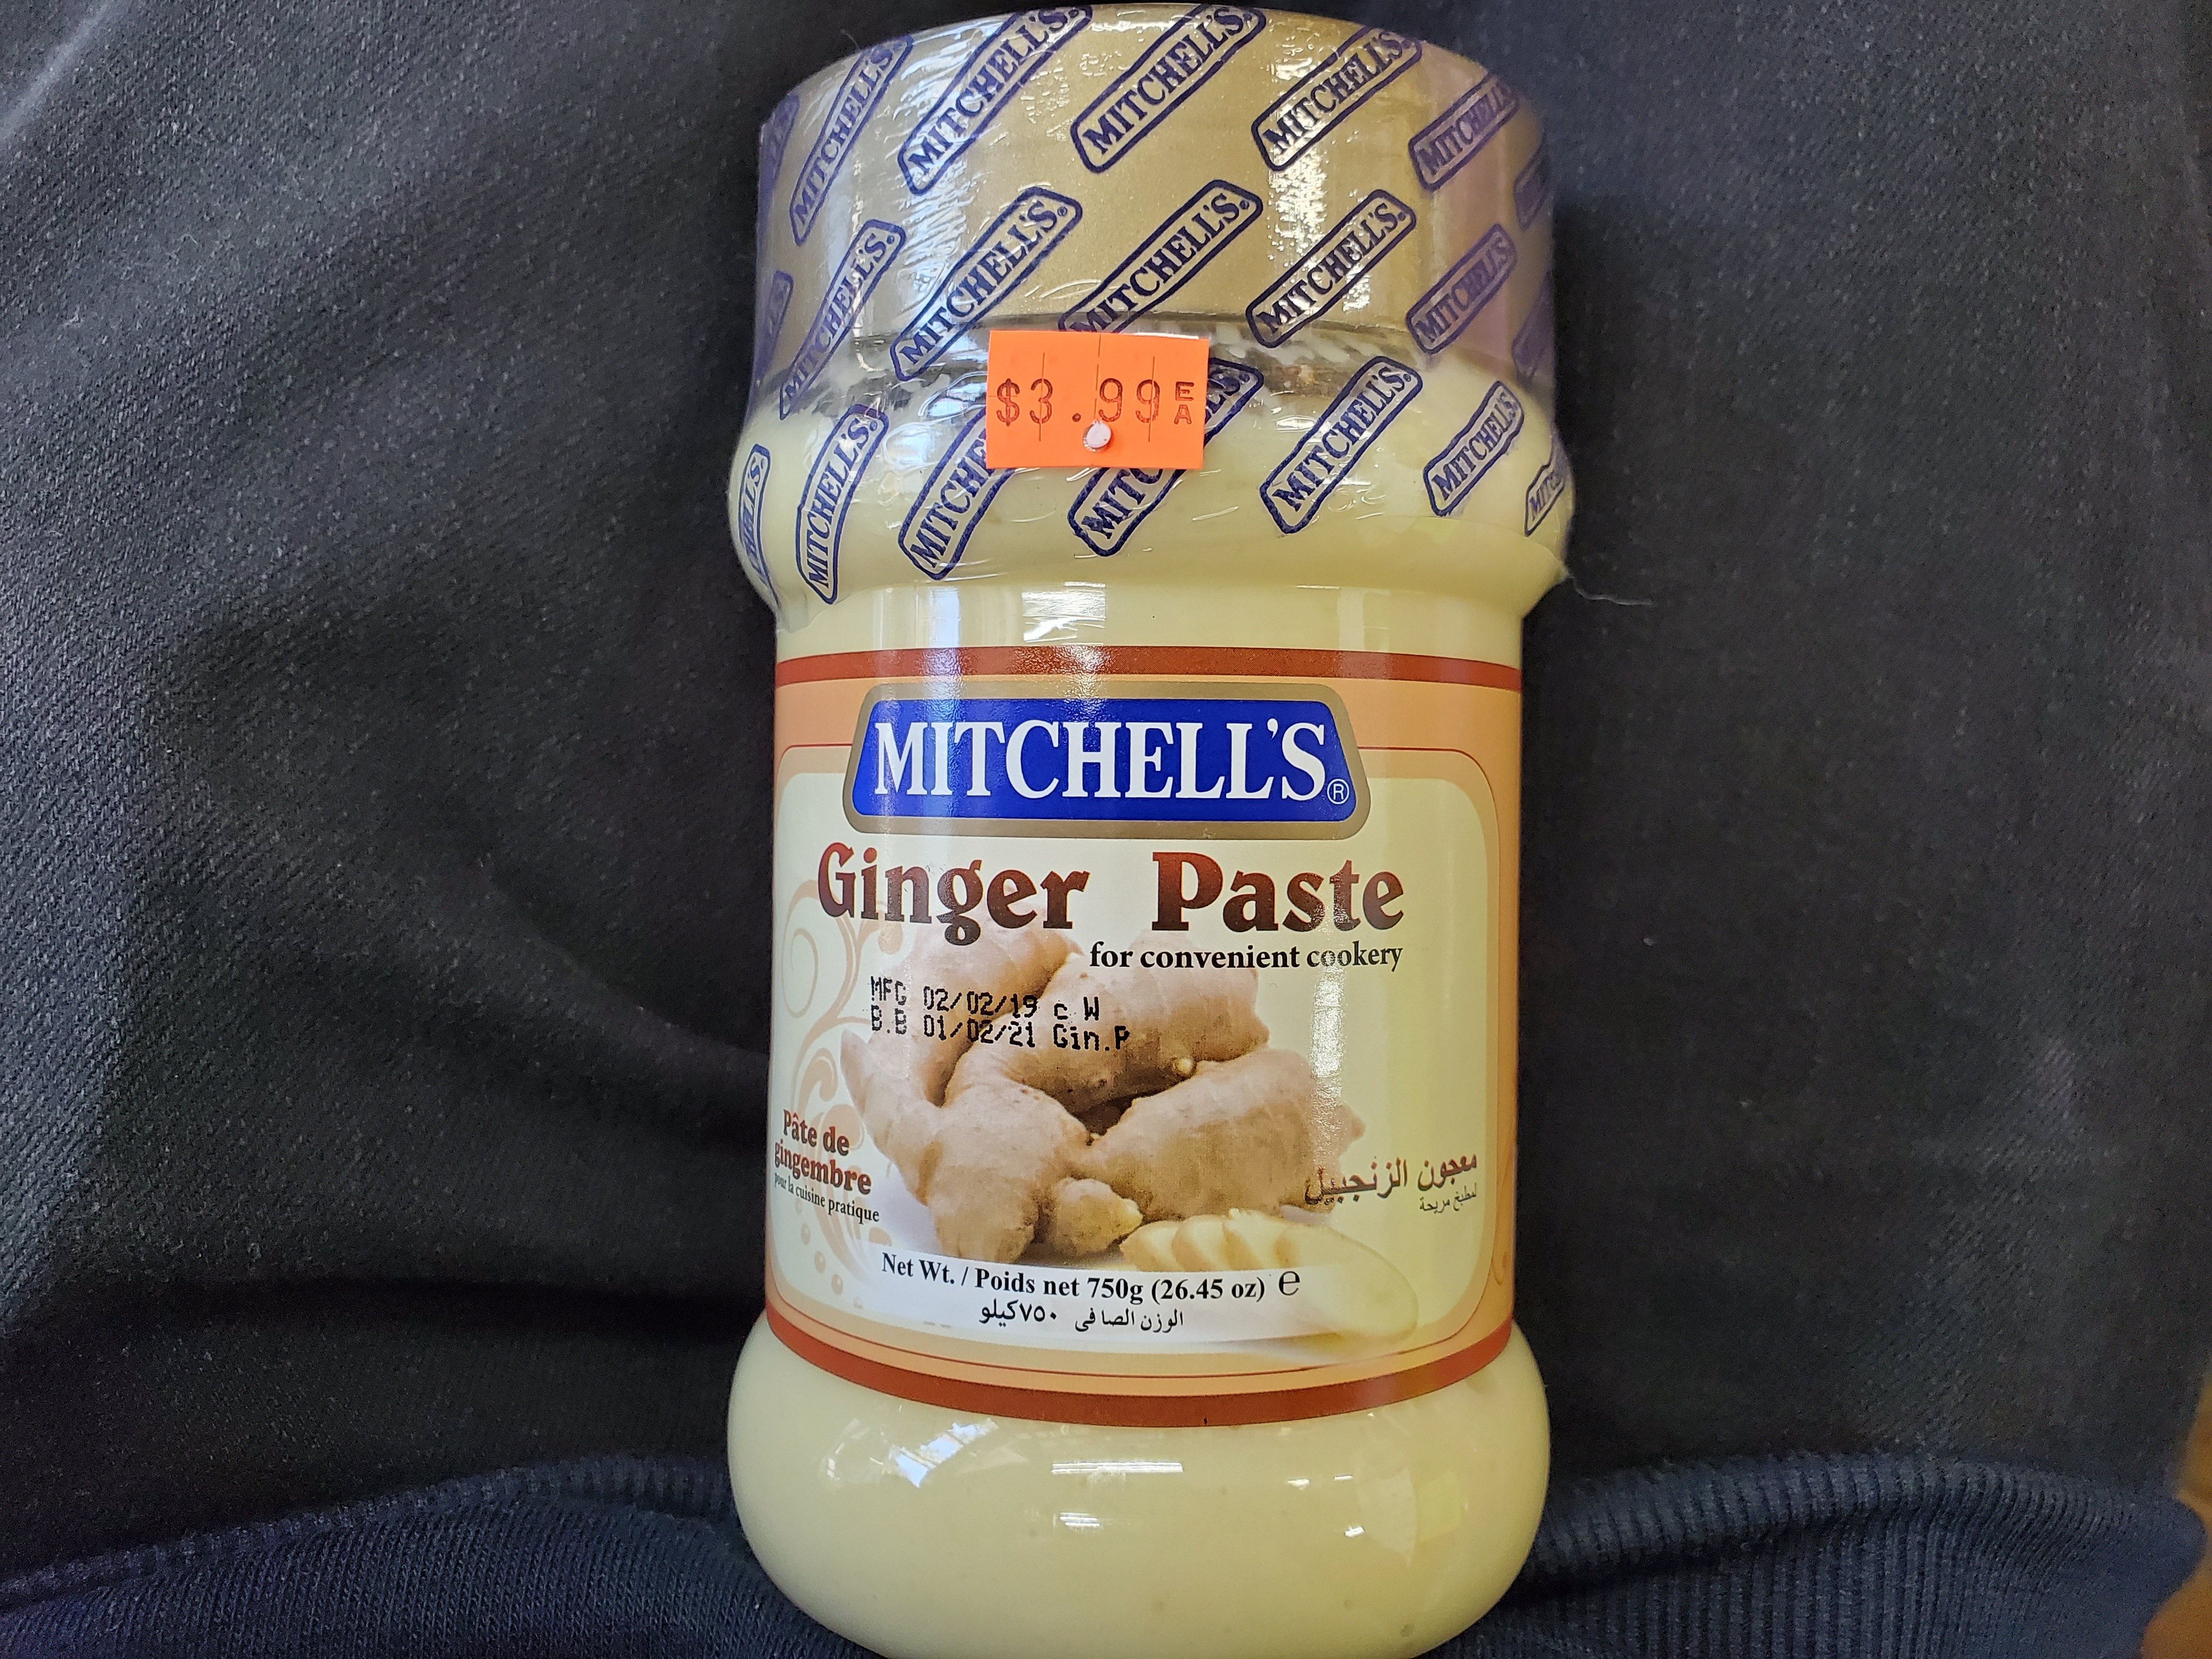 MITCHELL'S Ginger Paste 750g